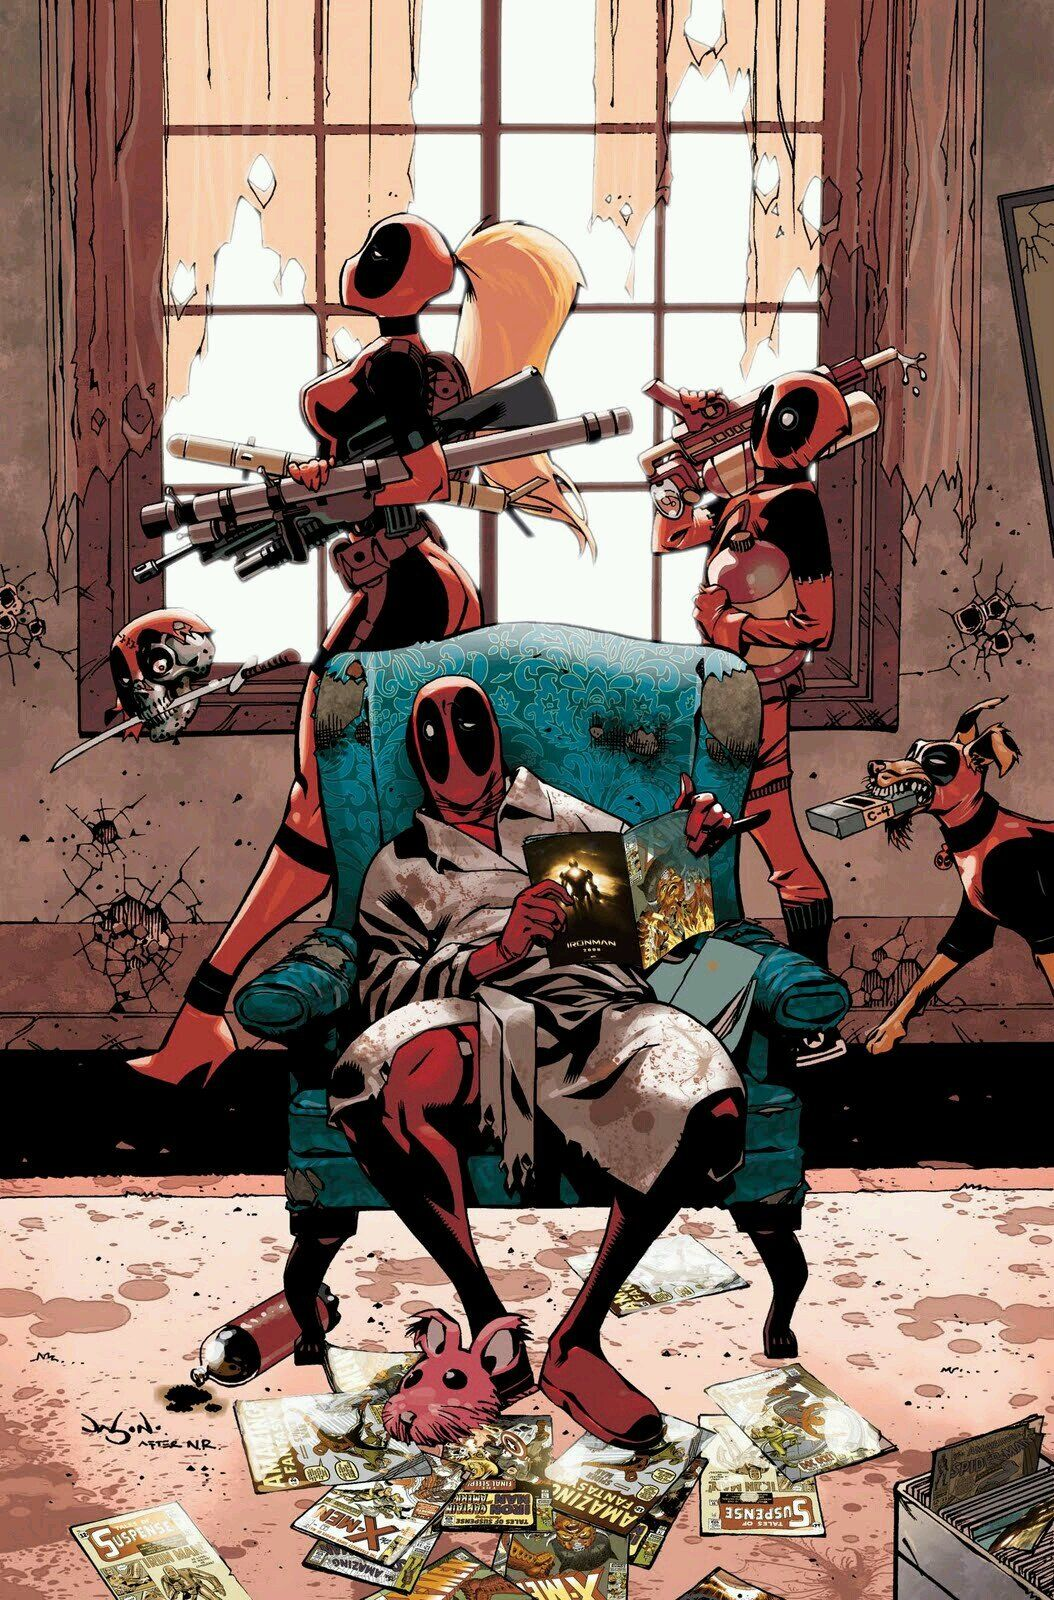 #Deadpool #Fan #Art. (Deadpool Family #1 cover) By: Jason Pearson.  (THE * 5 * STÅR * ÅWARD * OF: * AW YEAH, IT'S MAJOR ÅWESOMENESS!!!™)[THANK U 4 PINNING!!!<·><]<©>ÅÅÅ+(OB4E)     https://s-media-cache-ak0.pinimg.com/474x/90/46/ba/9046bac38763cb05514119fe5e4aea84.jpg